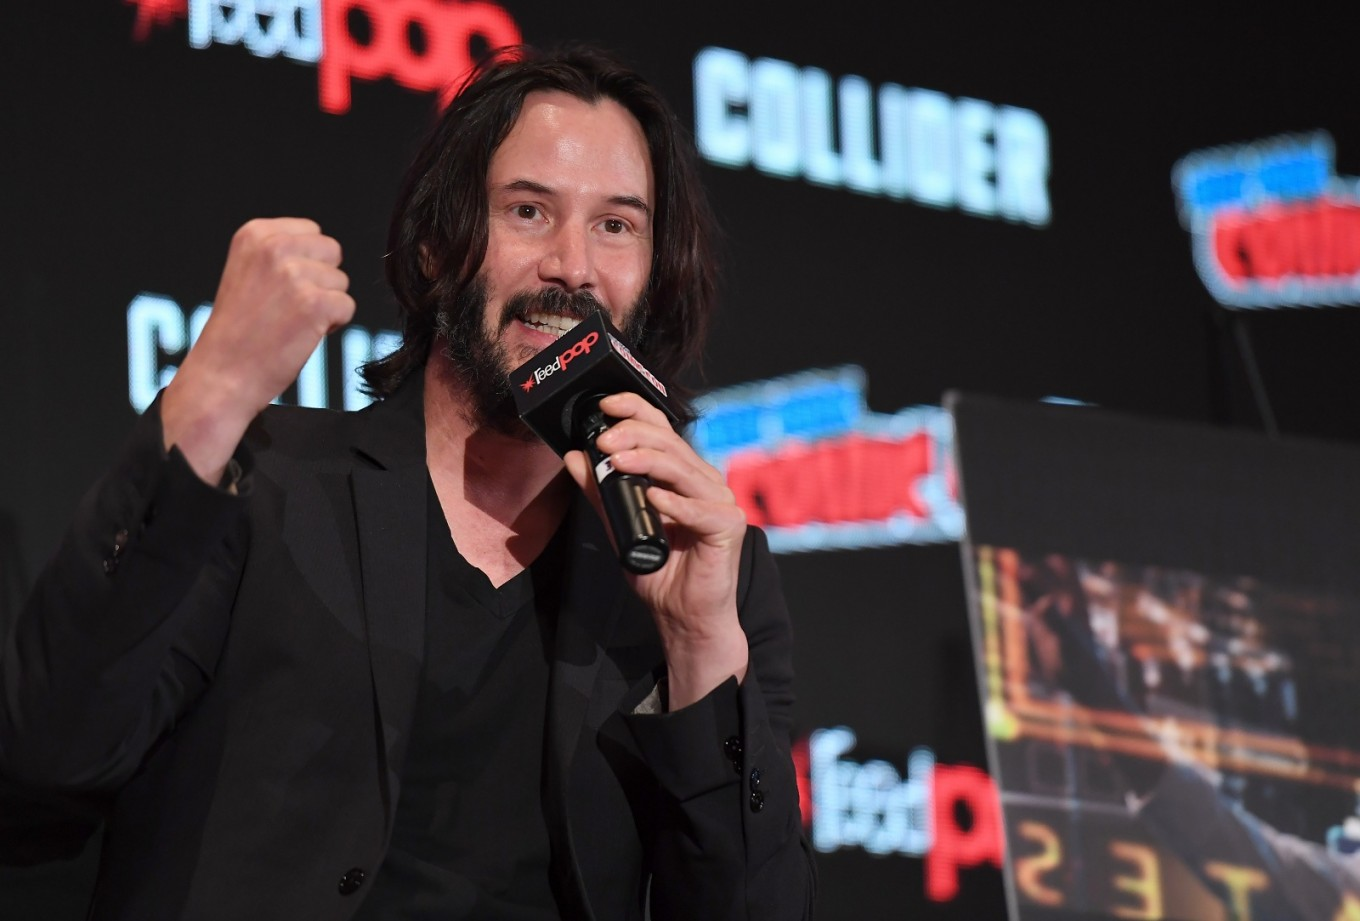 Keanu Reeves to voice a 'Toy Story 4' character